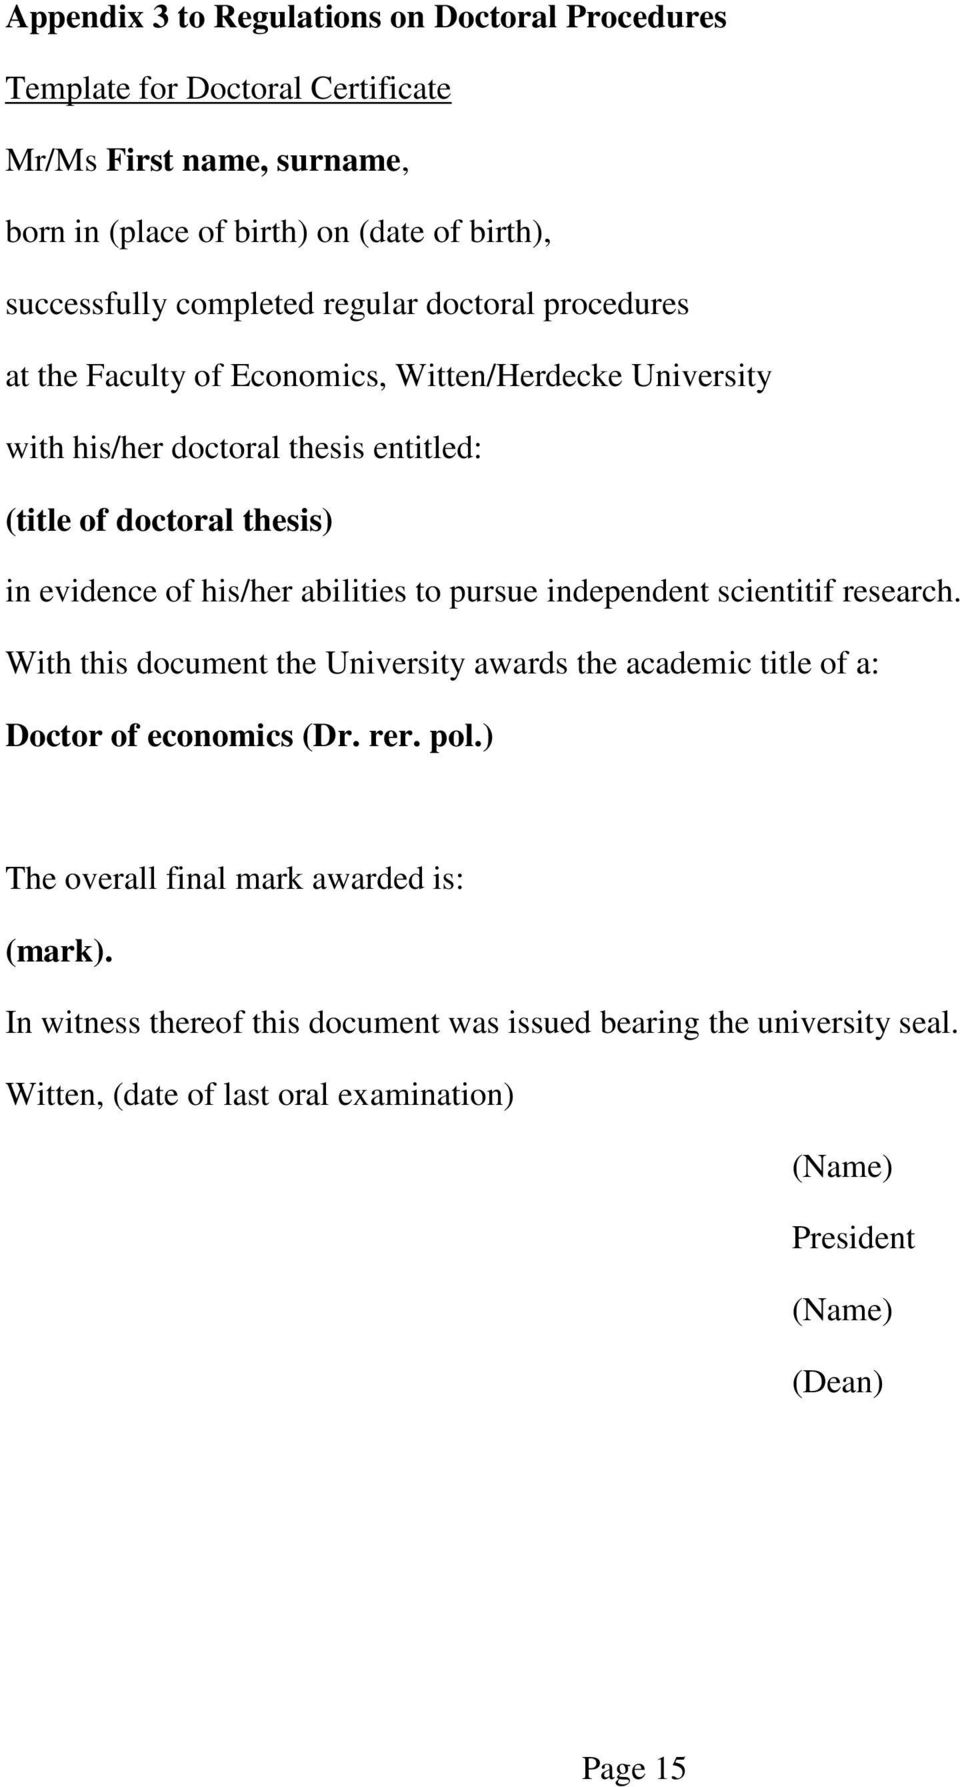 his/her abilities to pursue independent scientitif research. With this document the University awards the academic title of a: Doctor of economics (Dr. rer. pol.